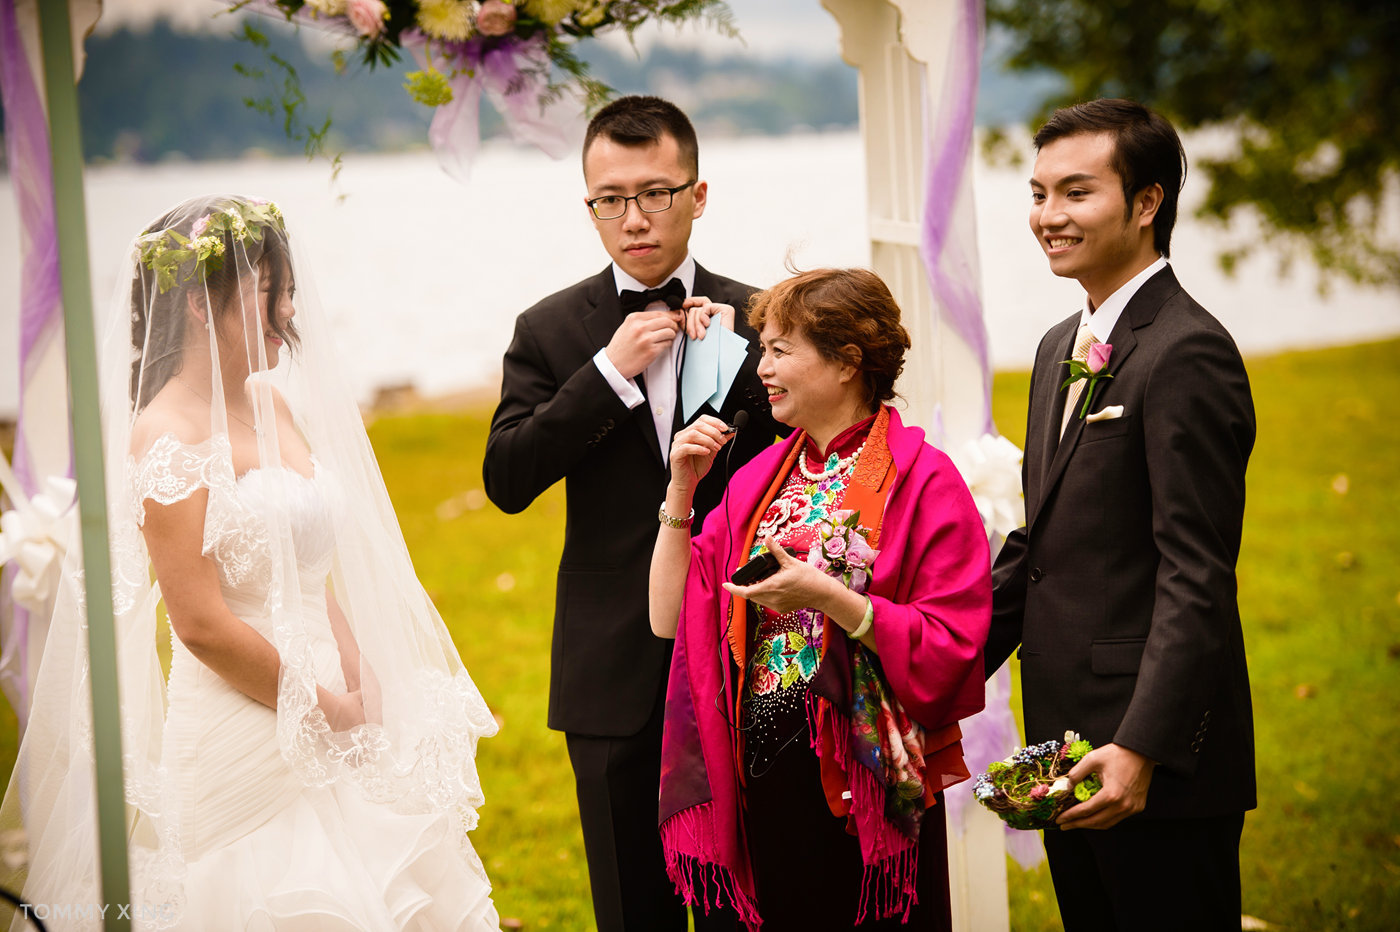 Seattle Wedding and pre wedding Los Angeles Tommy Xing Photography 西雅图洛杉矶旧金山婚礼婚纱照摄影师 078.jpg